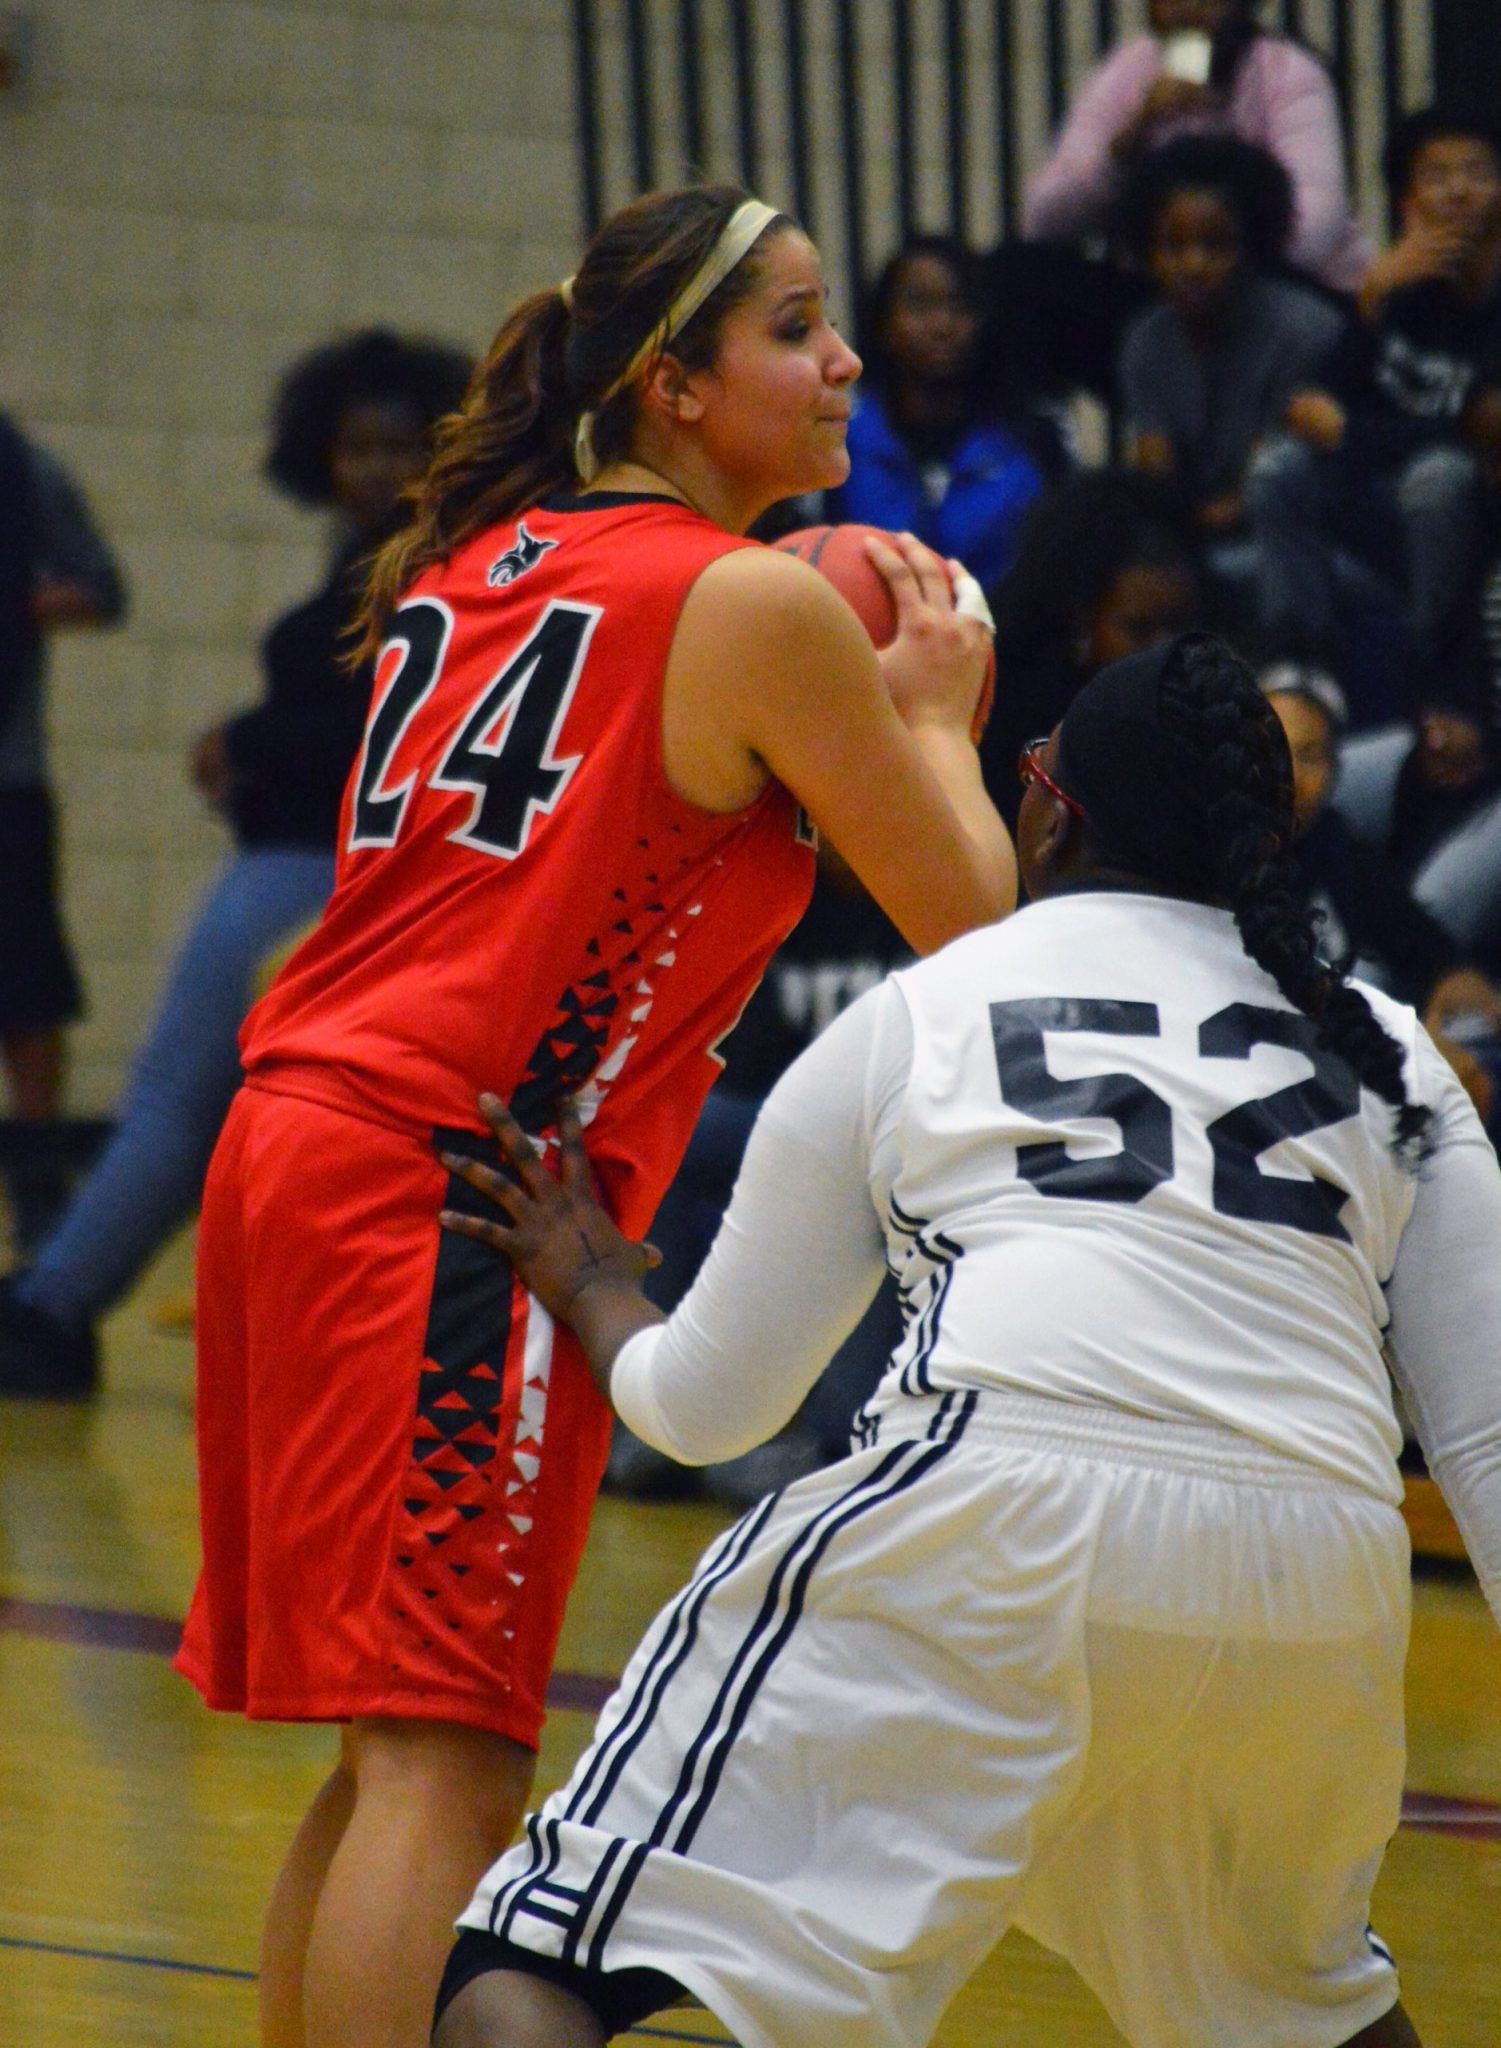 Lincoln girls take on Needles today in first round